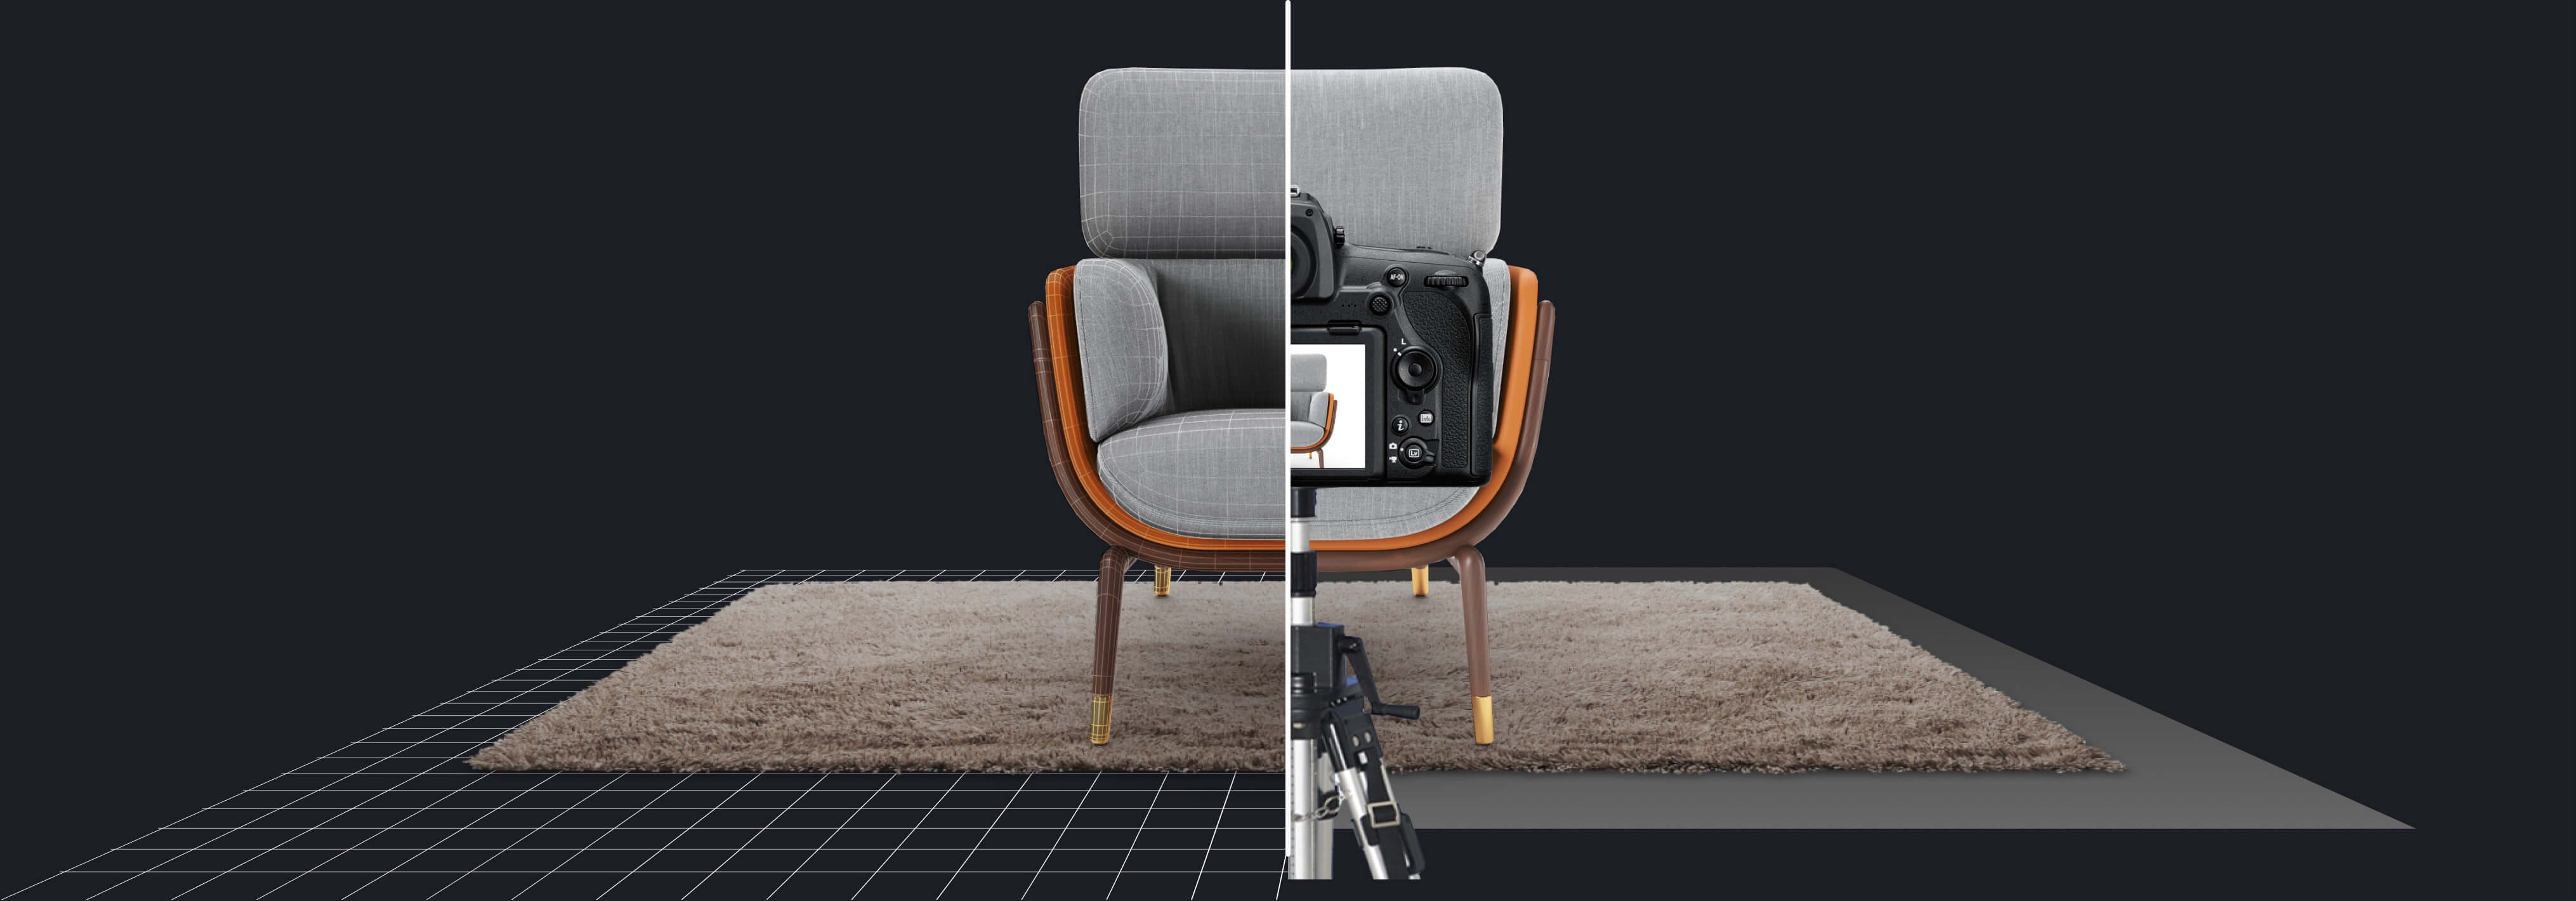 3D virtual photography is 6x cheaper than traditional photography. Comparison image from ARsenal by CGtrader